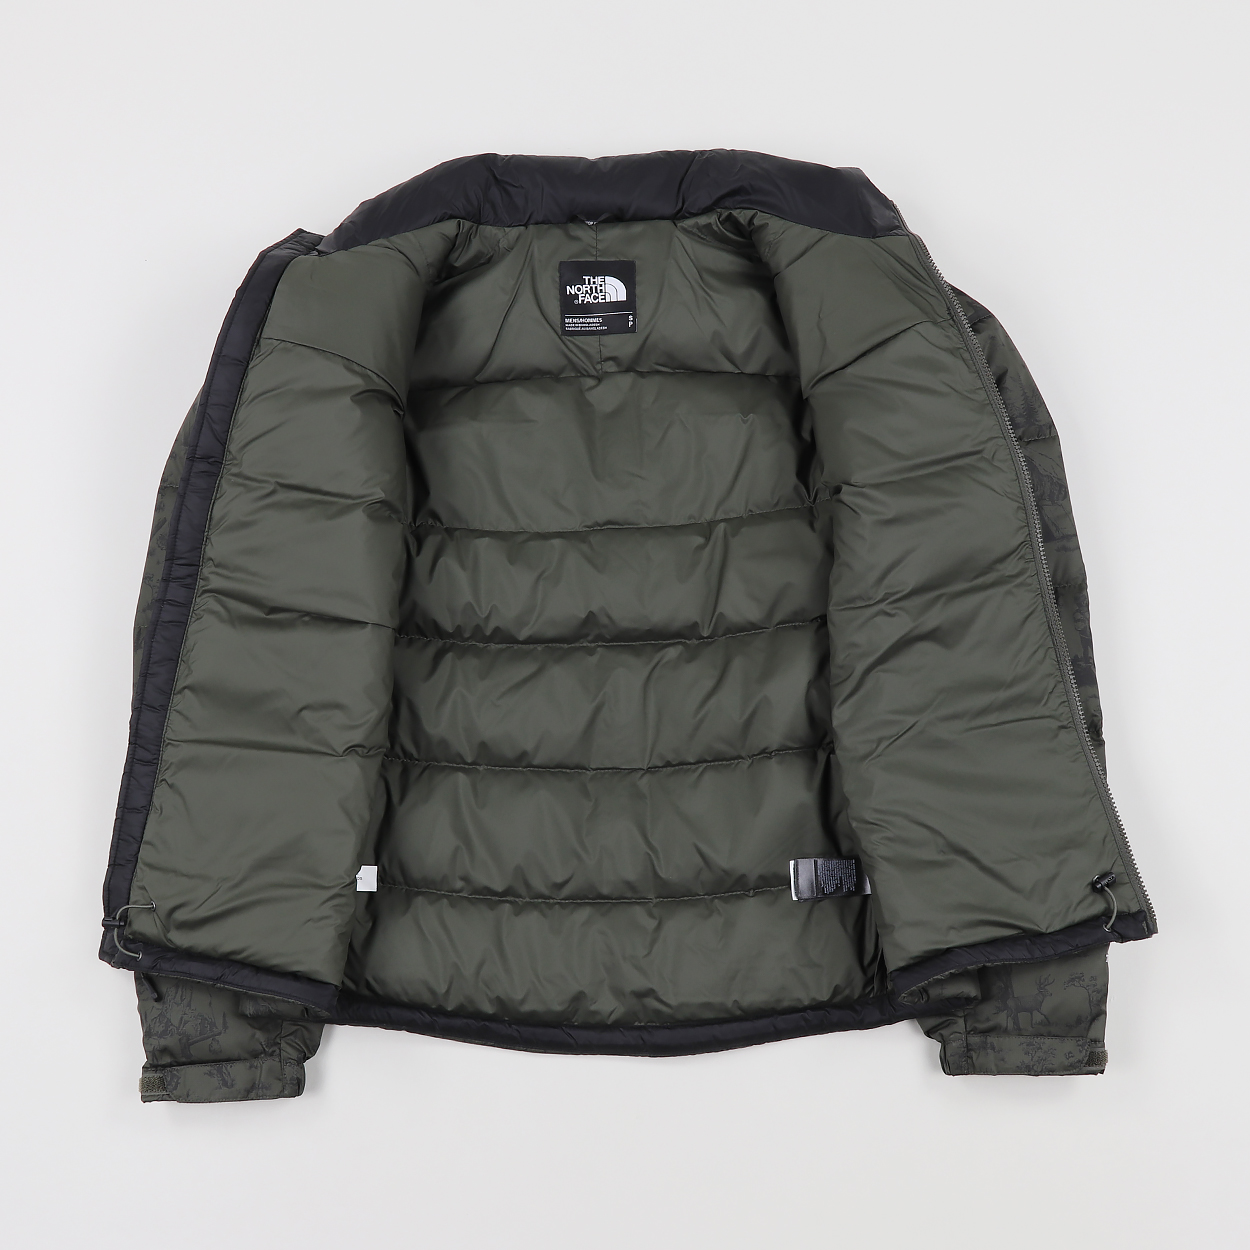 a288055215e A classic style from The North Face, the Nuptse 2 sillhouette is engineered  to deliver serious winter performance with 700-fill-power responsible goose  down ...